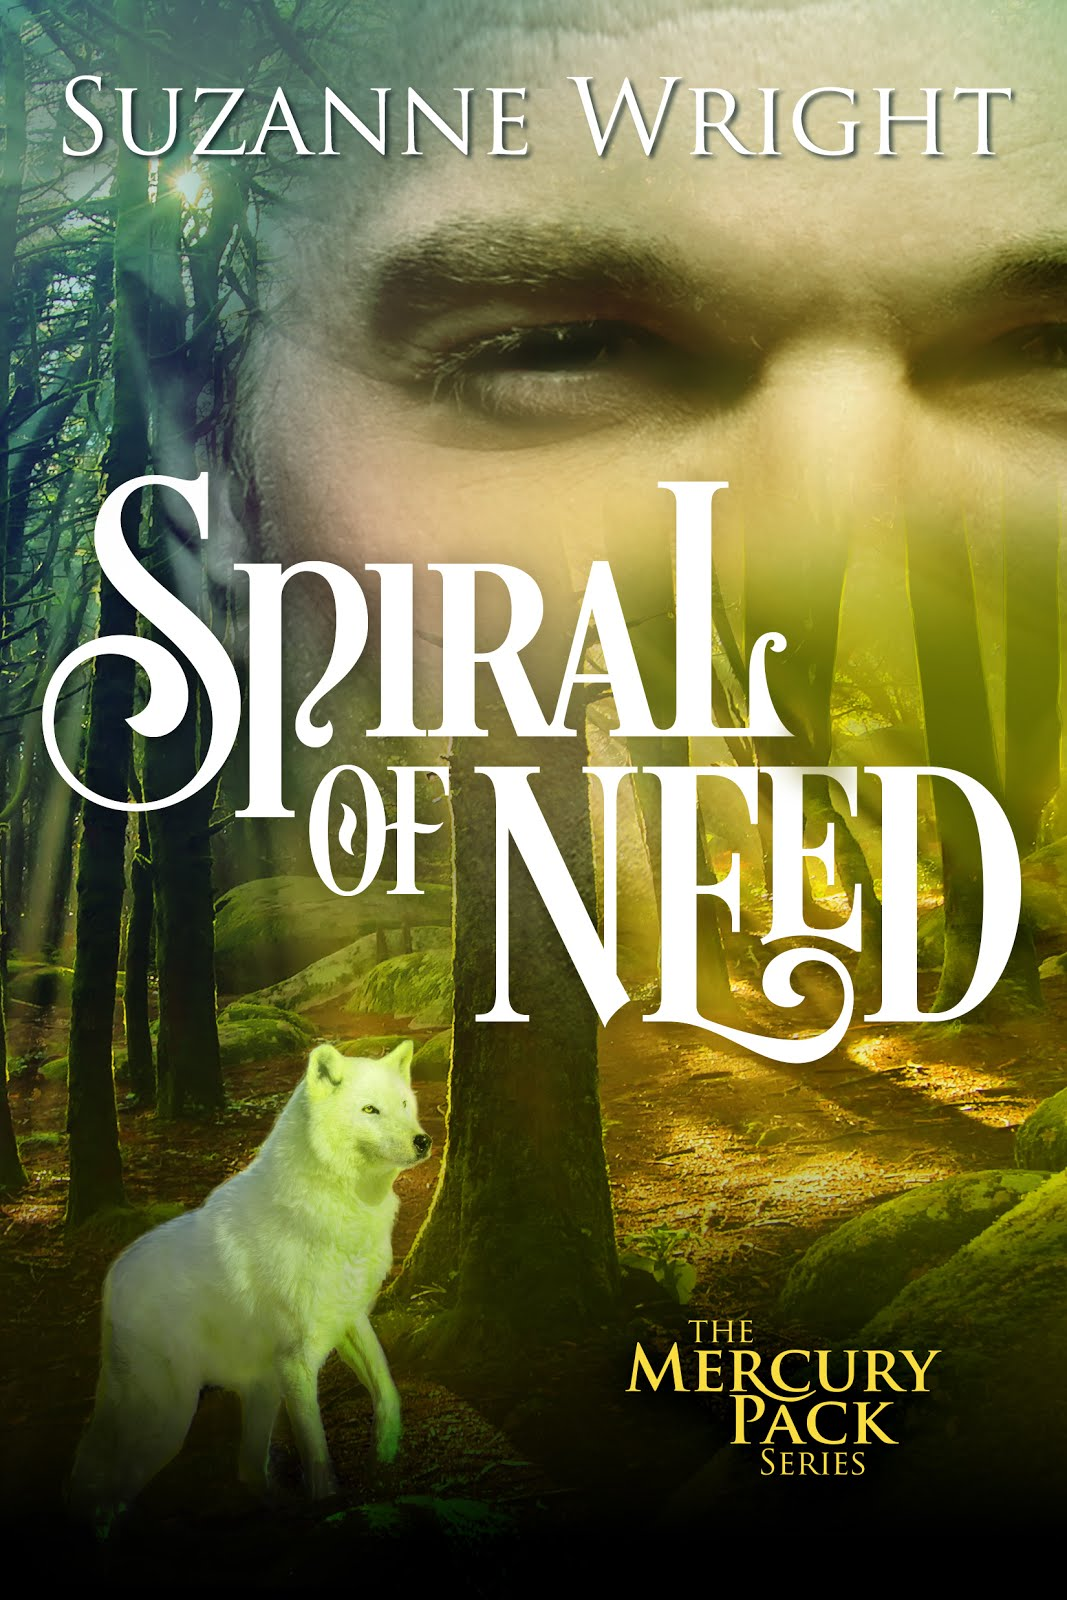 Spiral of Need, September 29, 2015